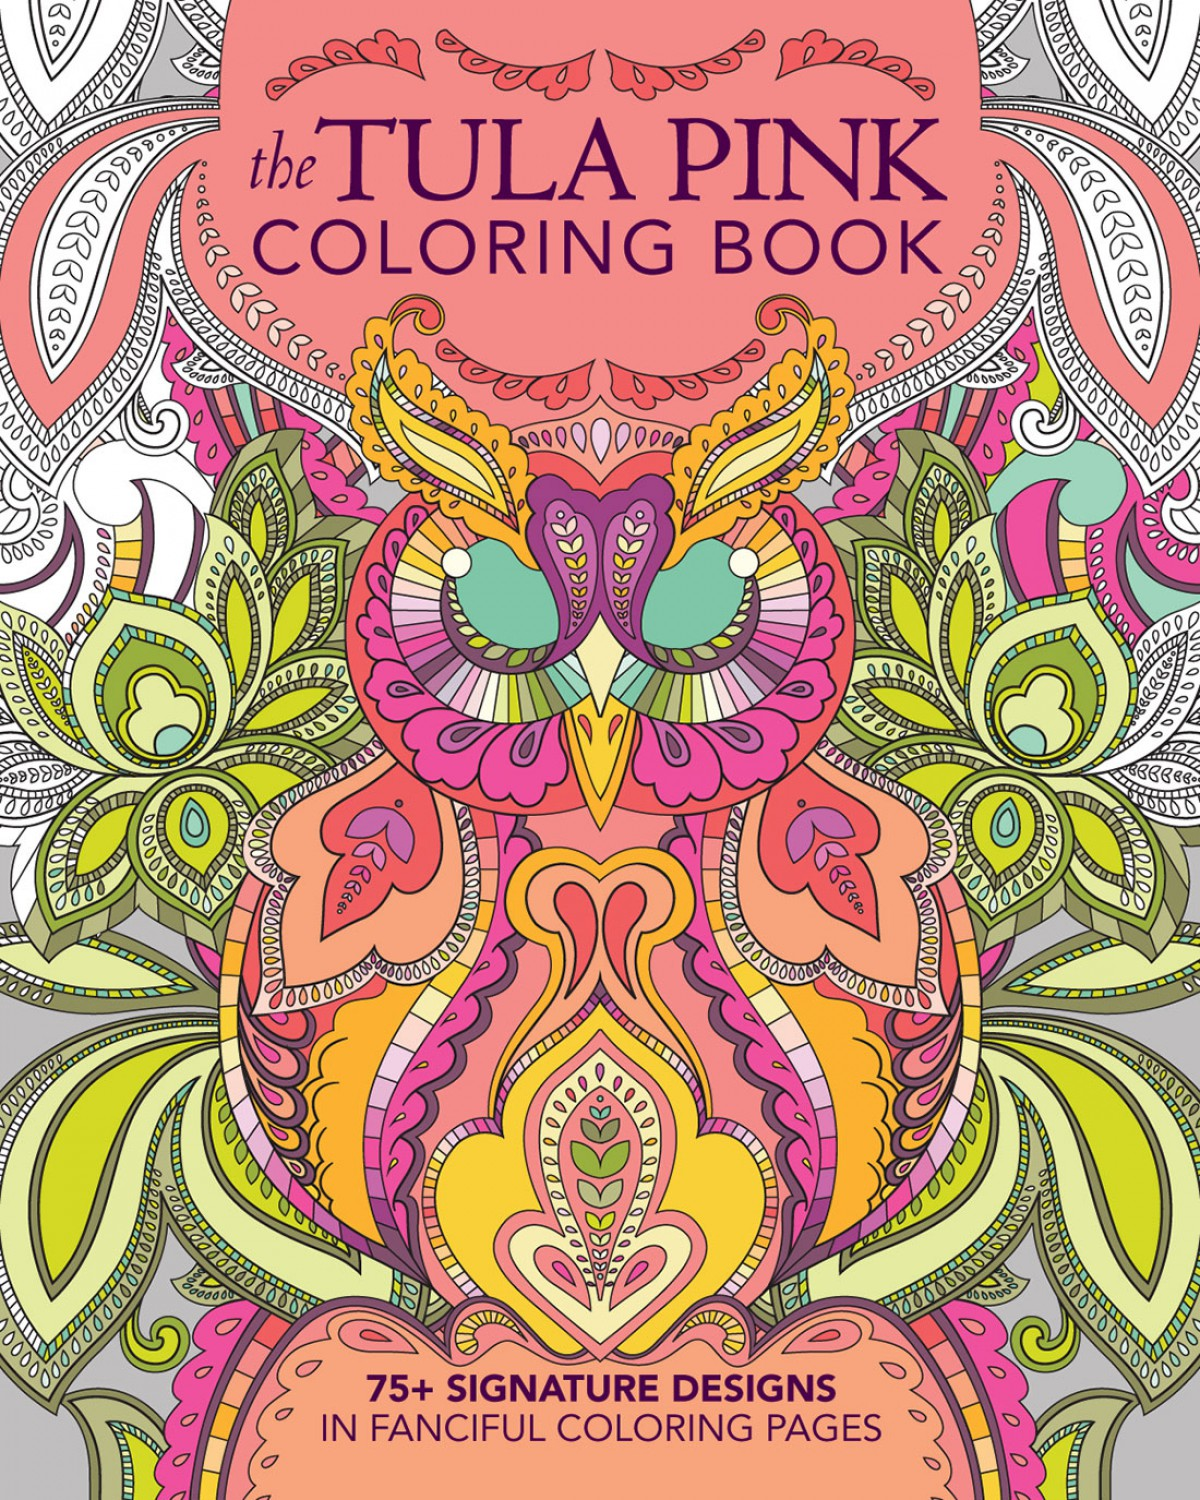 28145627a4 Tula Pink Coloring Book - Softcover S0476 $15.95/ each